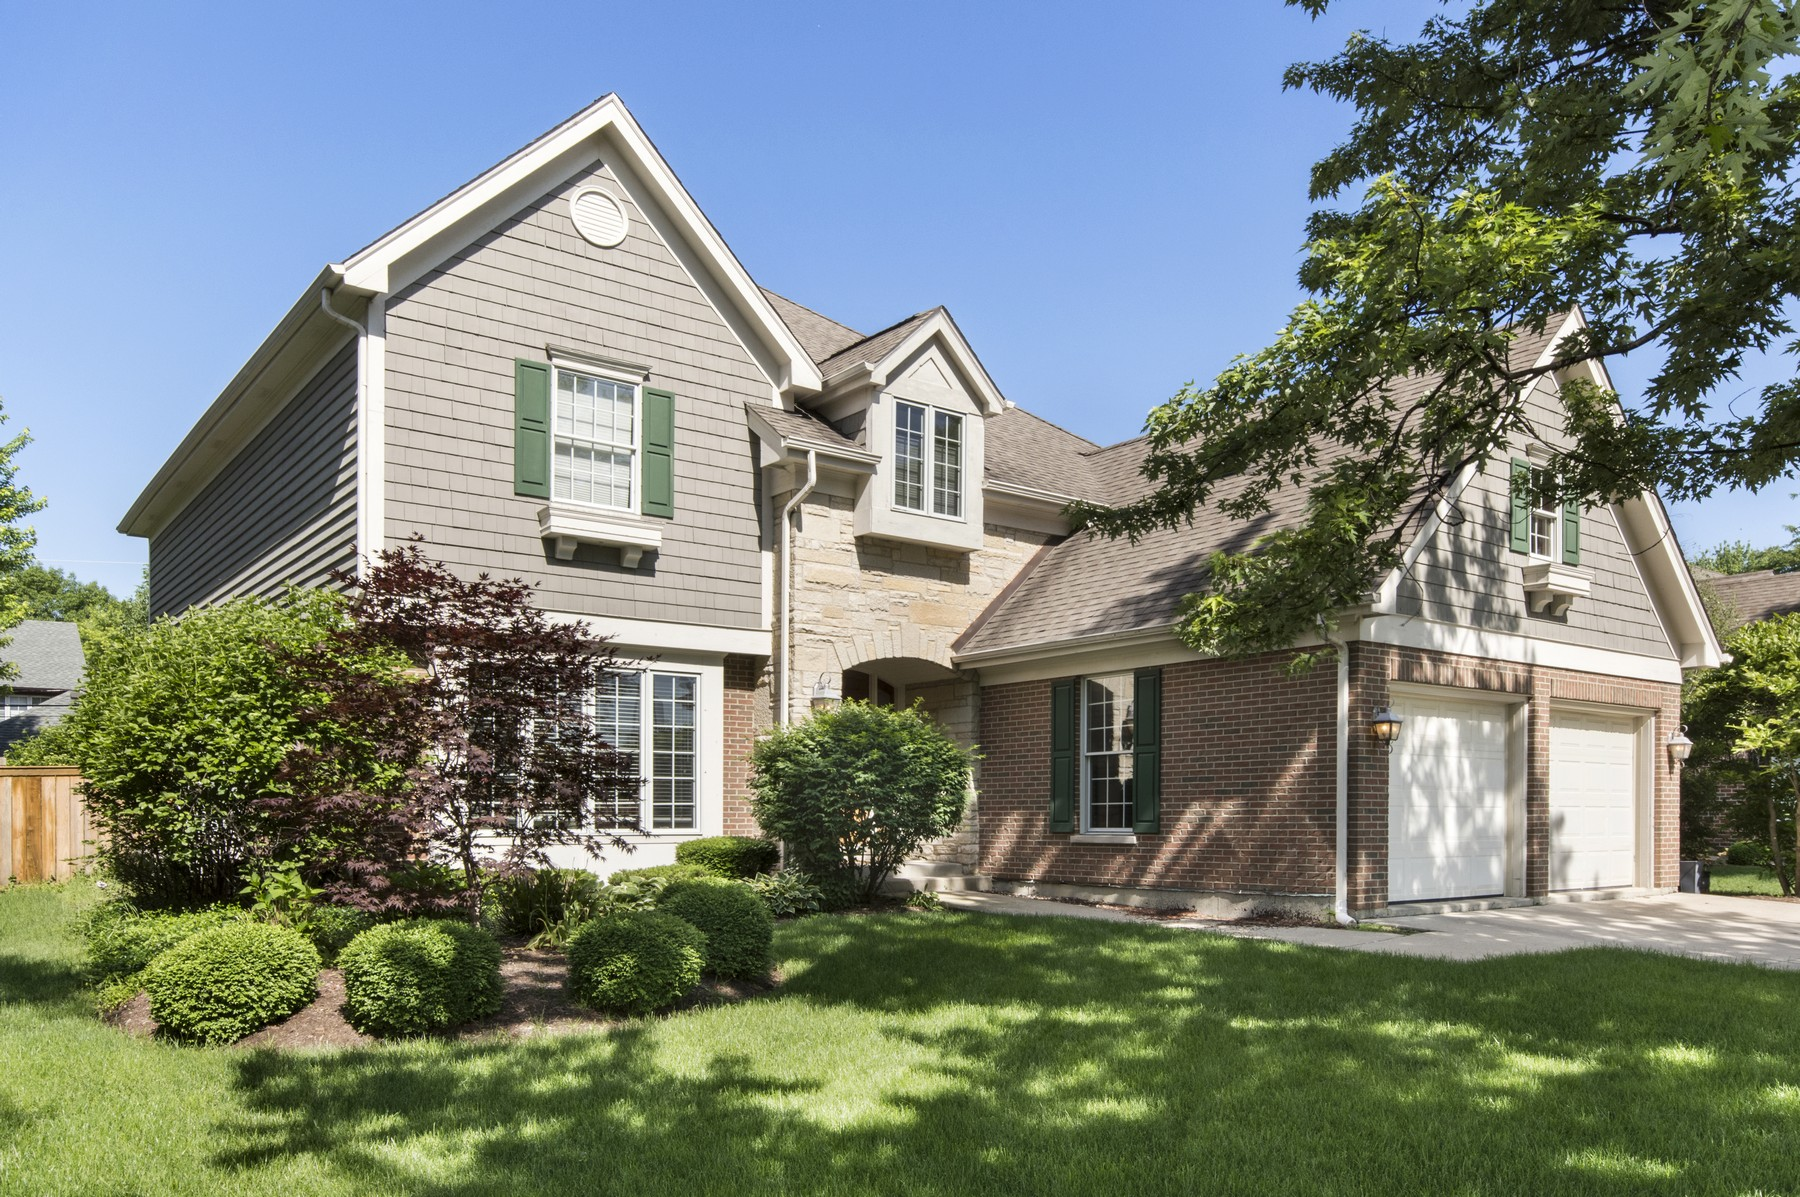 Villa per Vendita alle ore Beautifully Updated 2 Story Home 224 Mills Street Hinsdale, Illinois, 60521 Stati Uniti